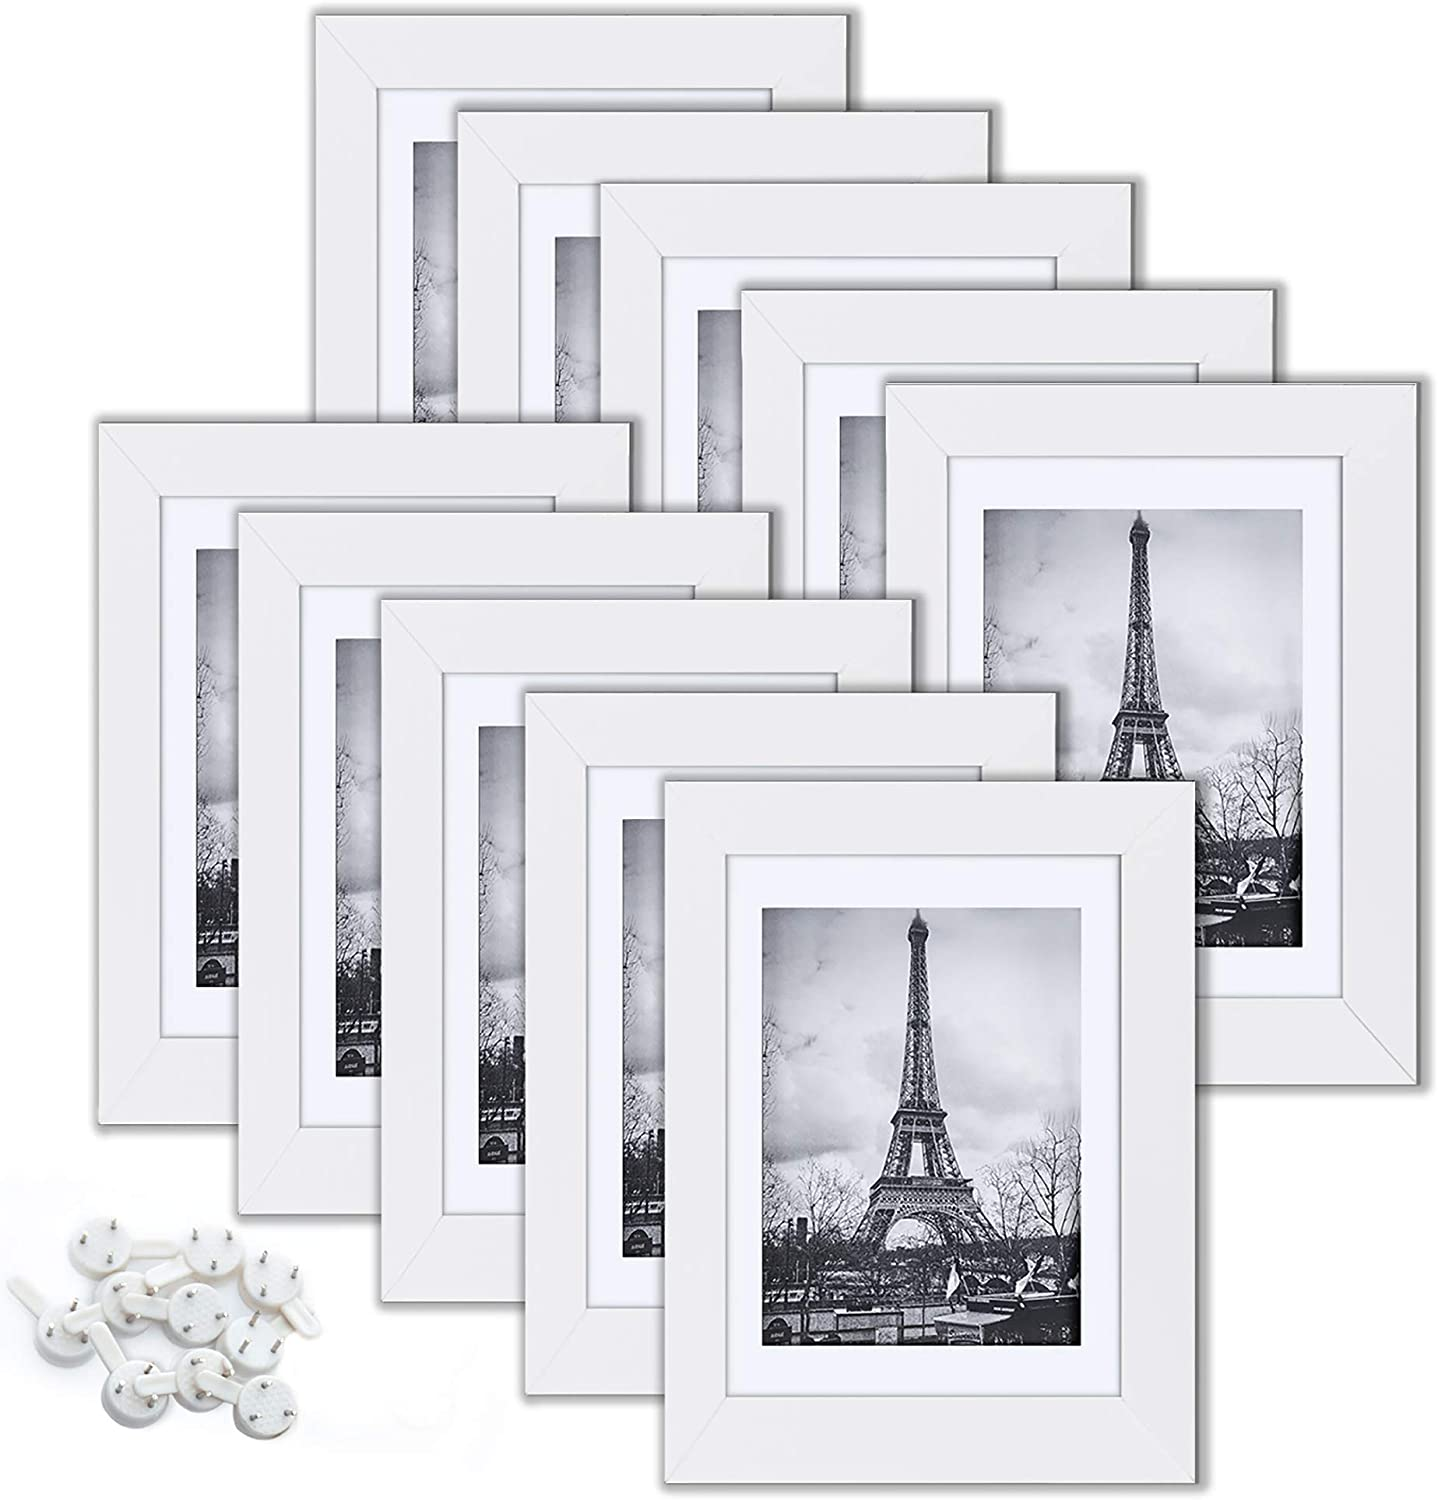 upsimples 5x7 Picture Frame Set of 10, Display Pictures 4x6 with Mat or 5x7 Without Mat, Multi Photo Frames Collage for Wall or Tabletop Display, White -